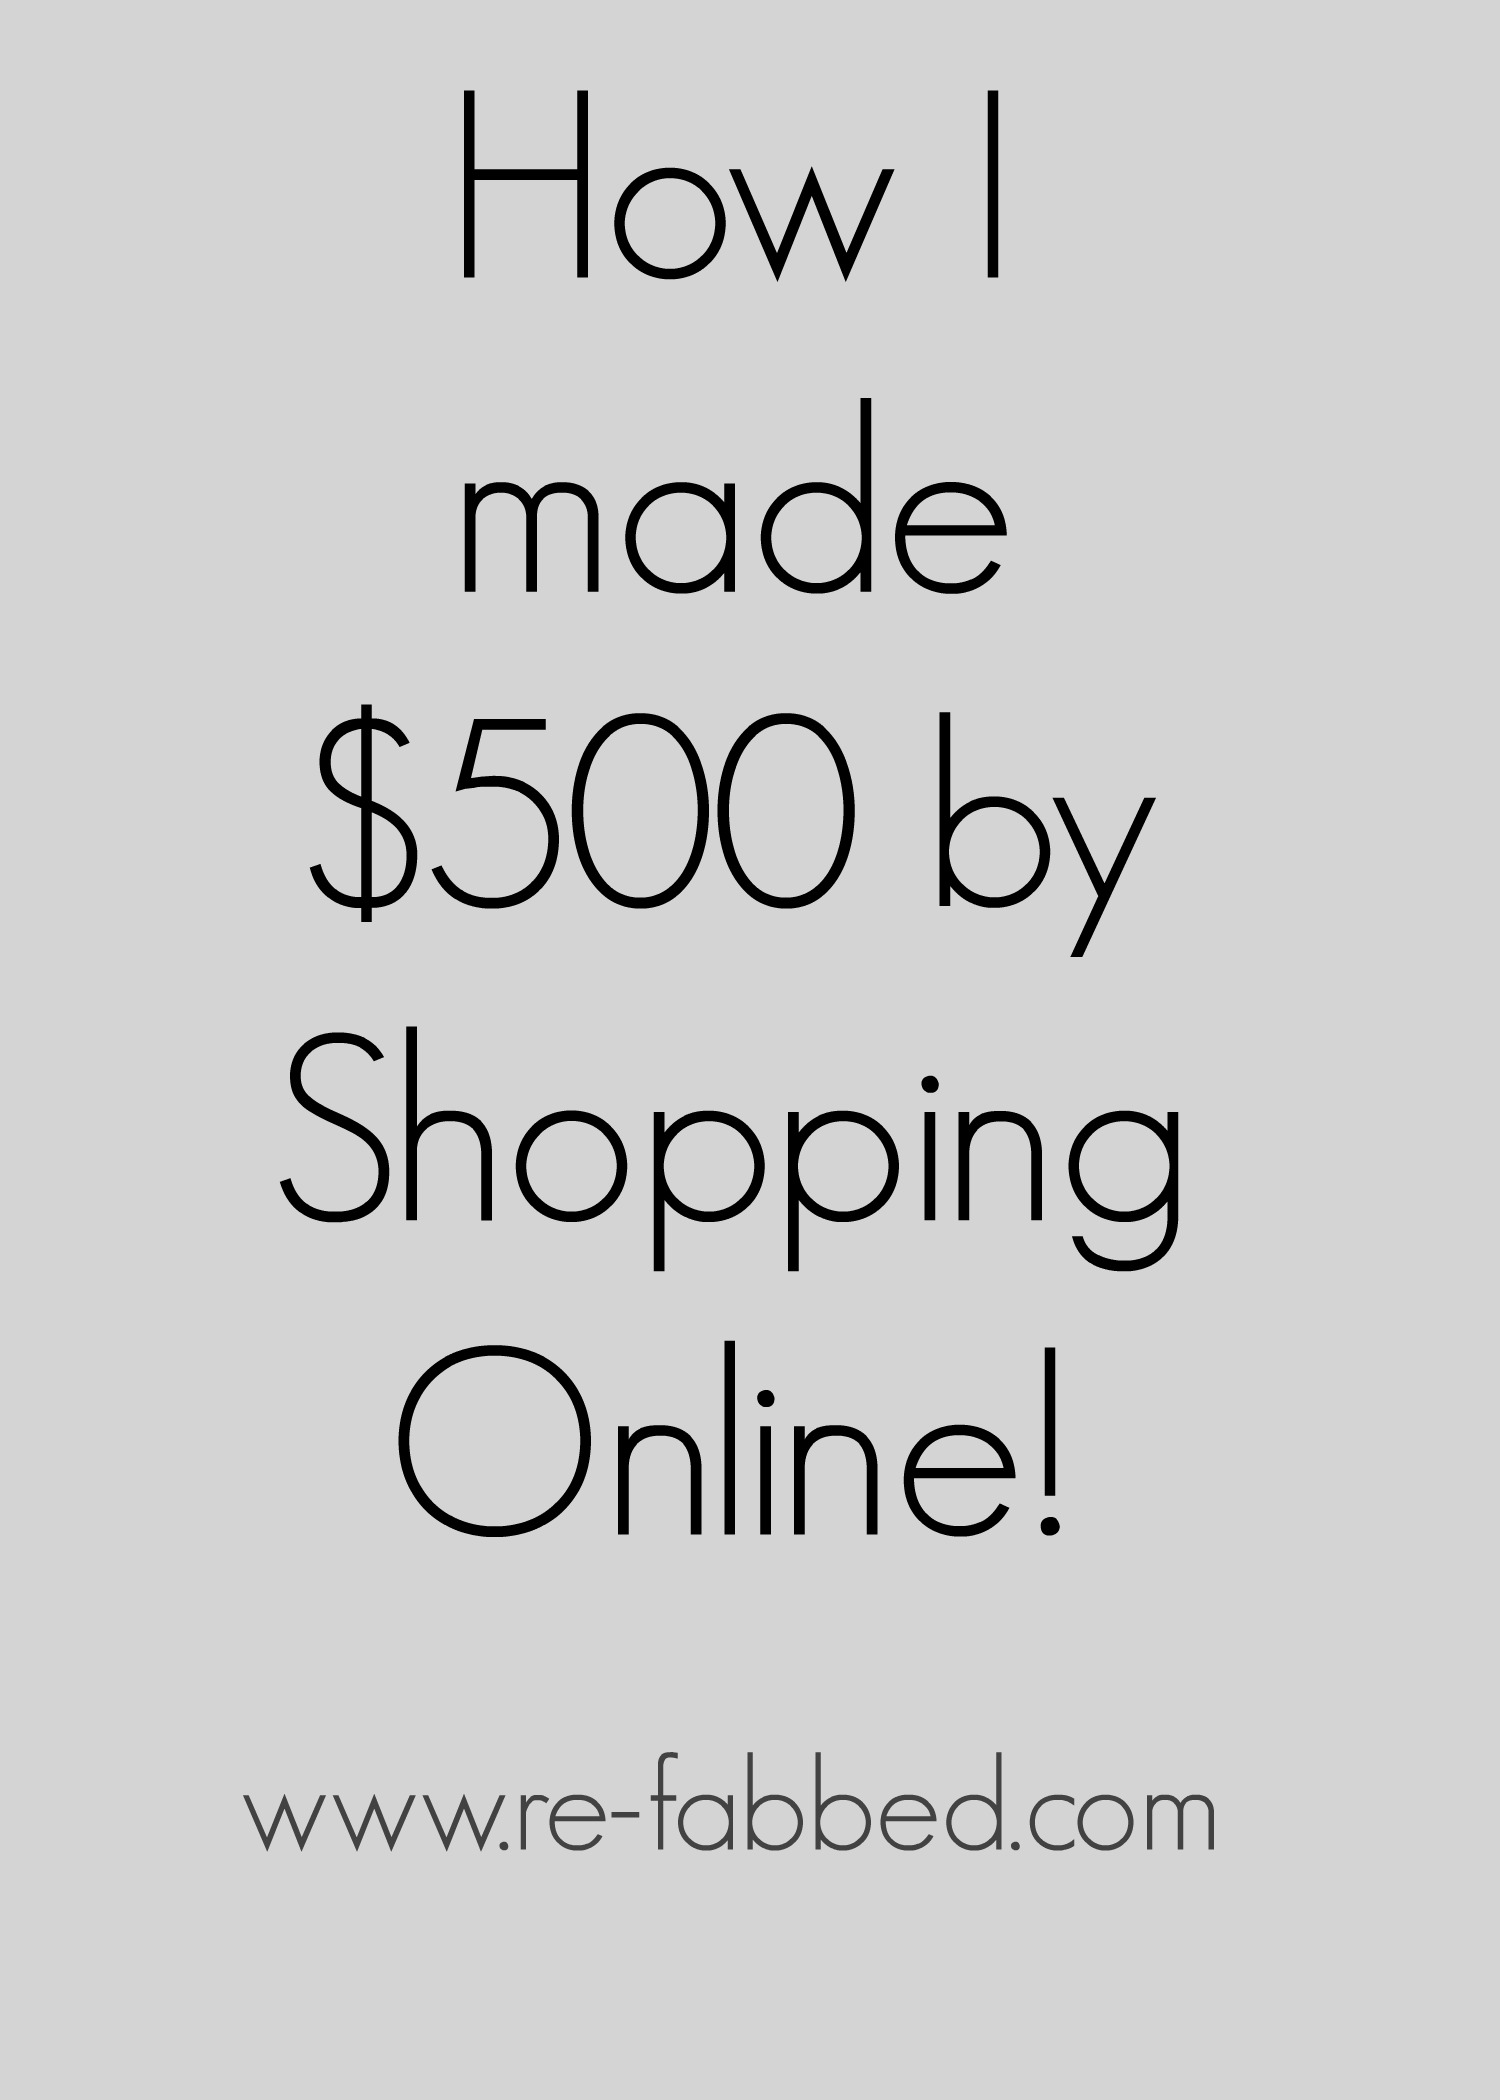 My #1 Online Shopping Secret